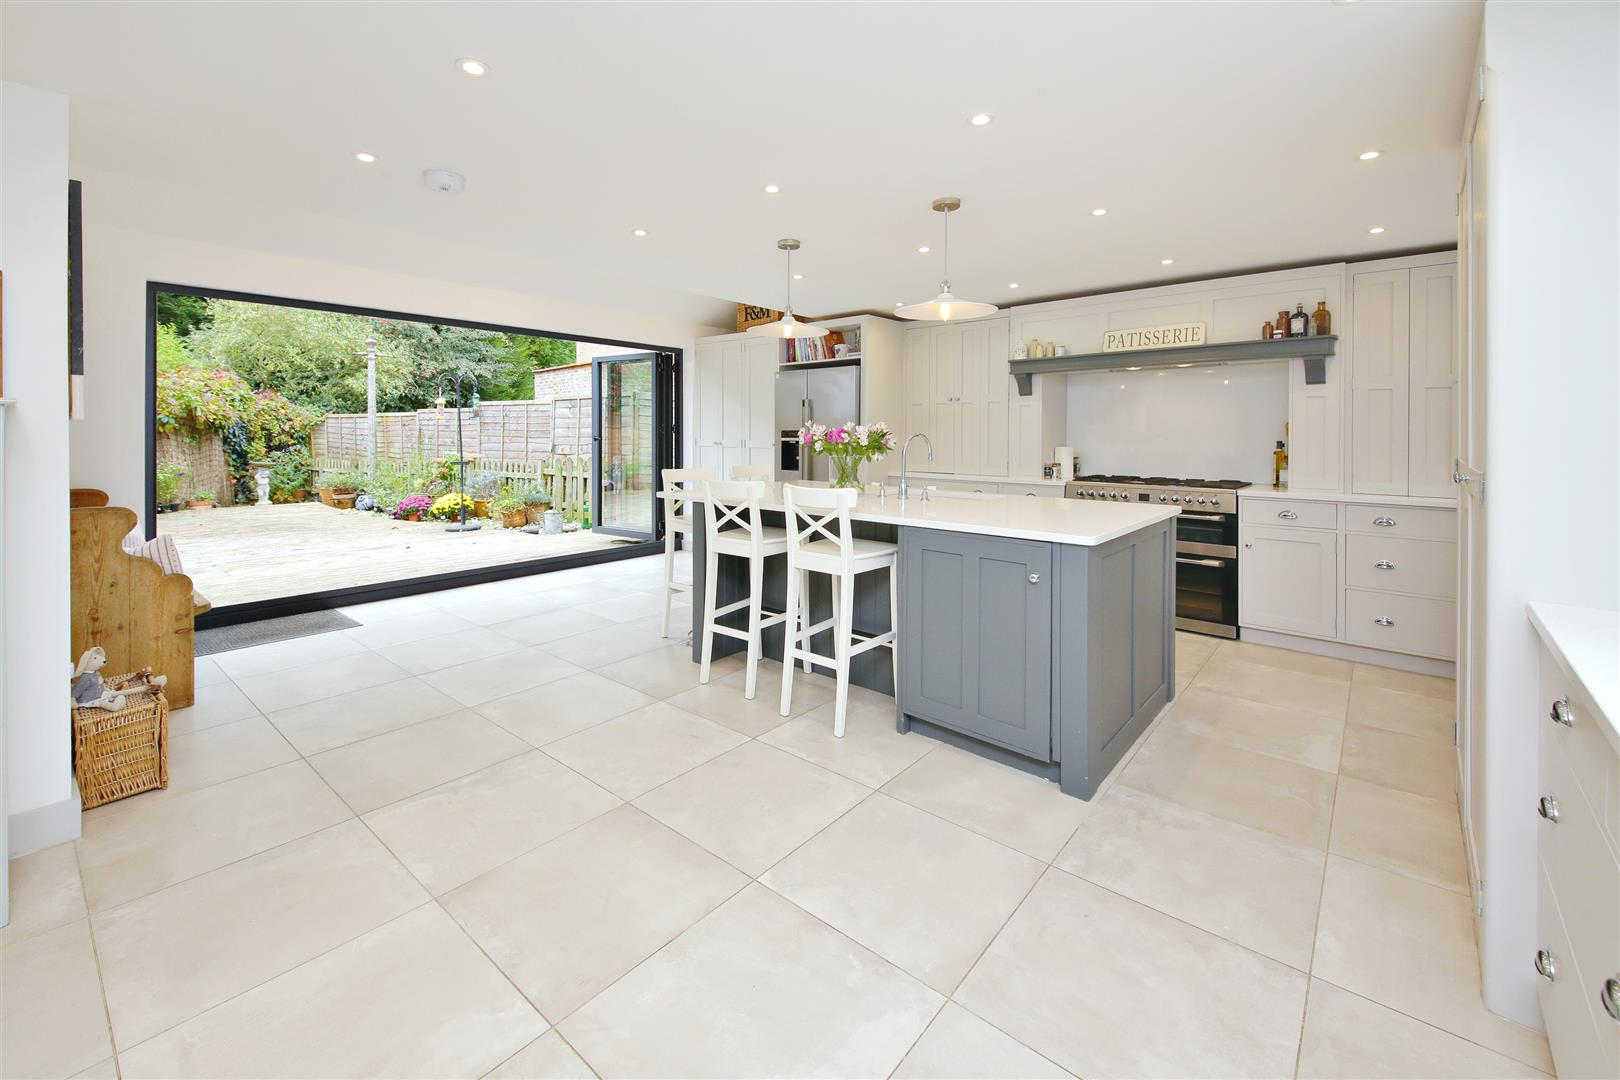 5 bed to rent in Letchmore Heath - (Property Image 1)